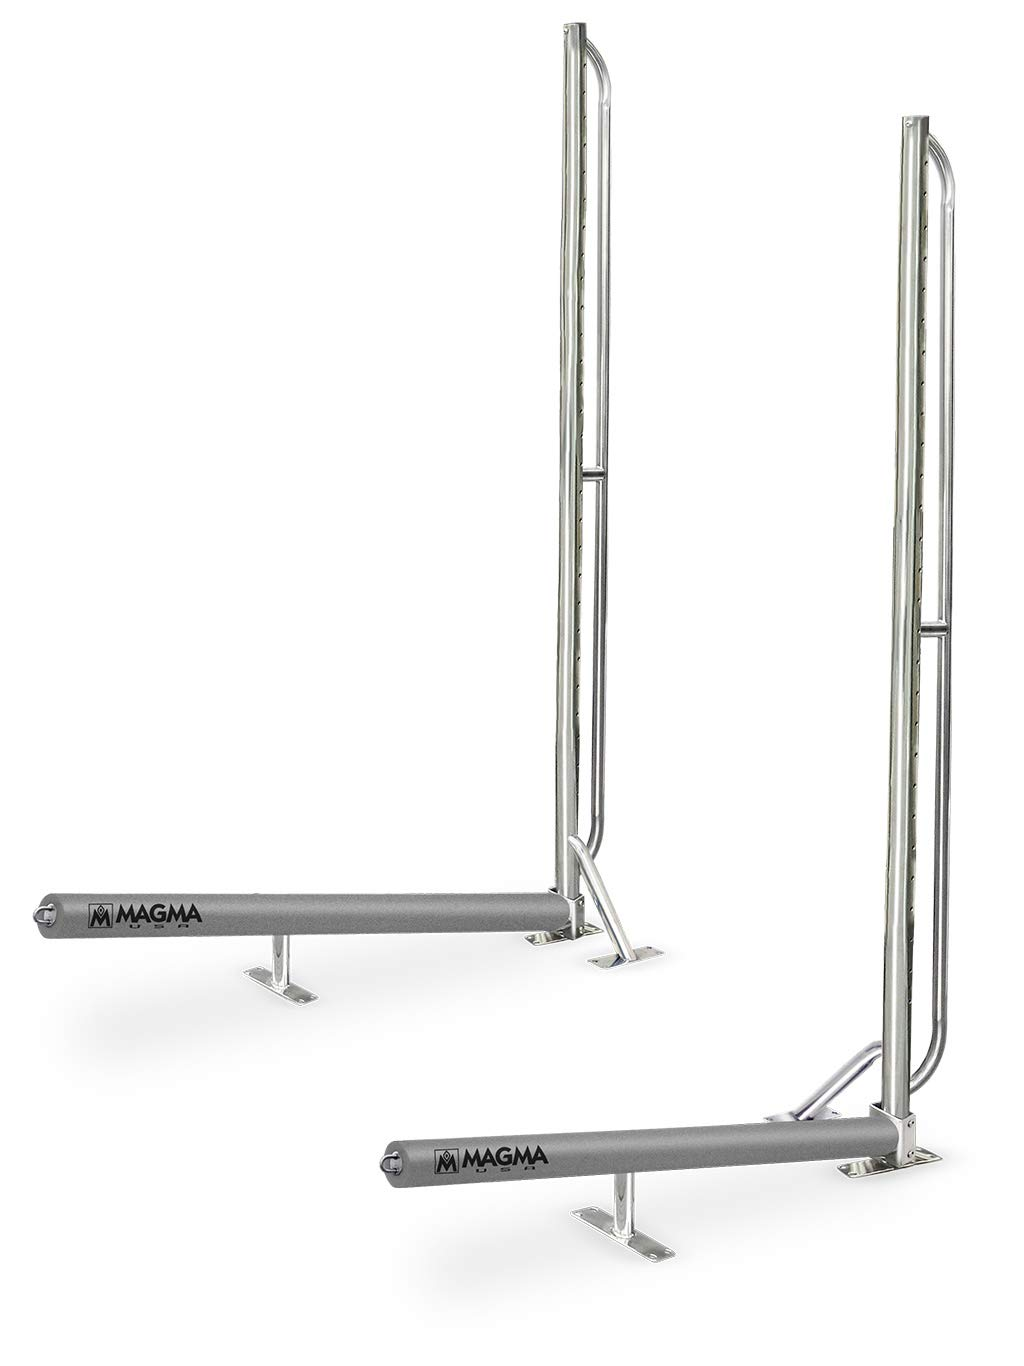 Magma Products, R10-1001 Storage Rack System Base Frame Kayak/SUP Dock Mounted, Polished Stainless Steel